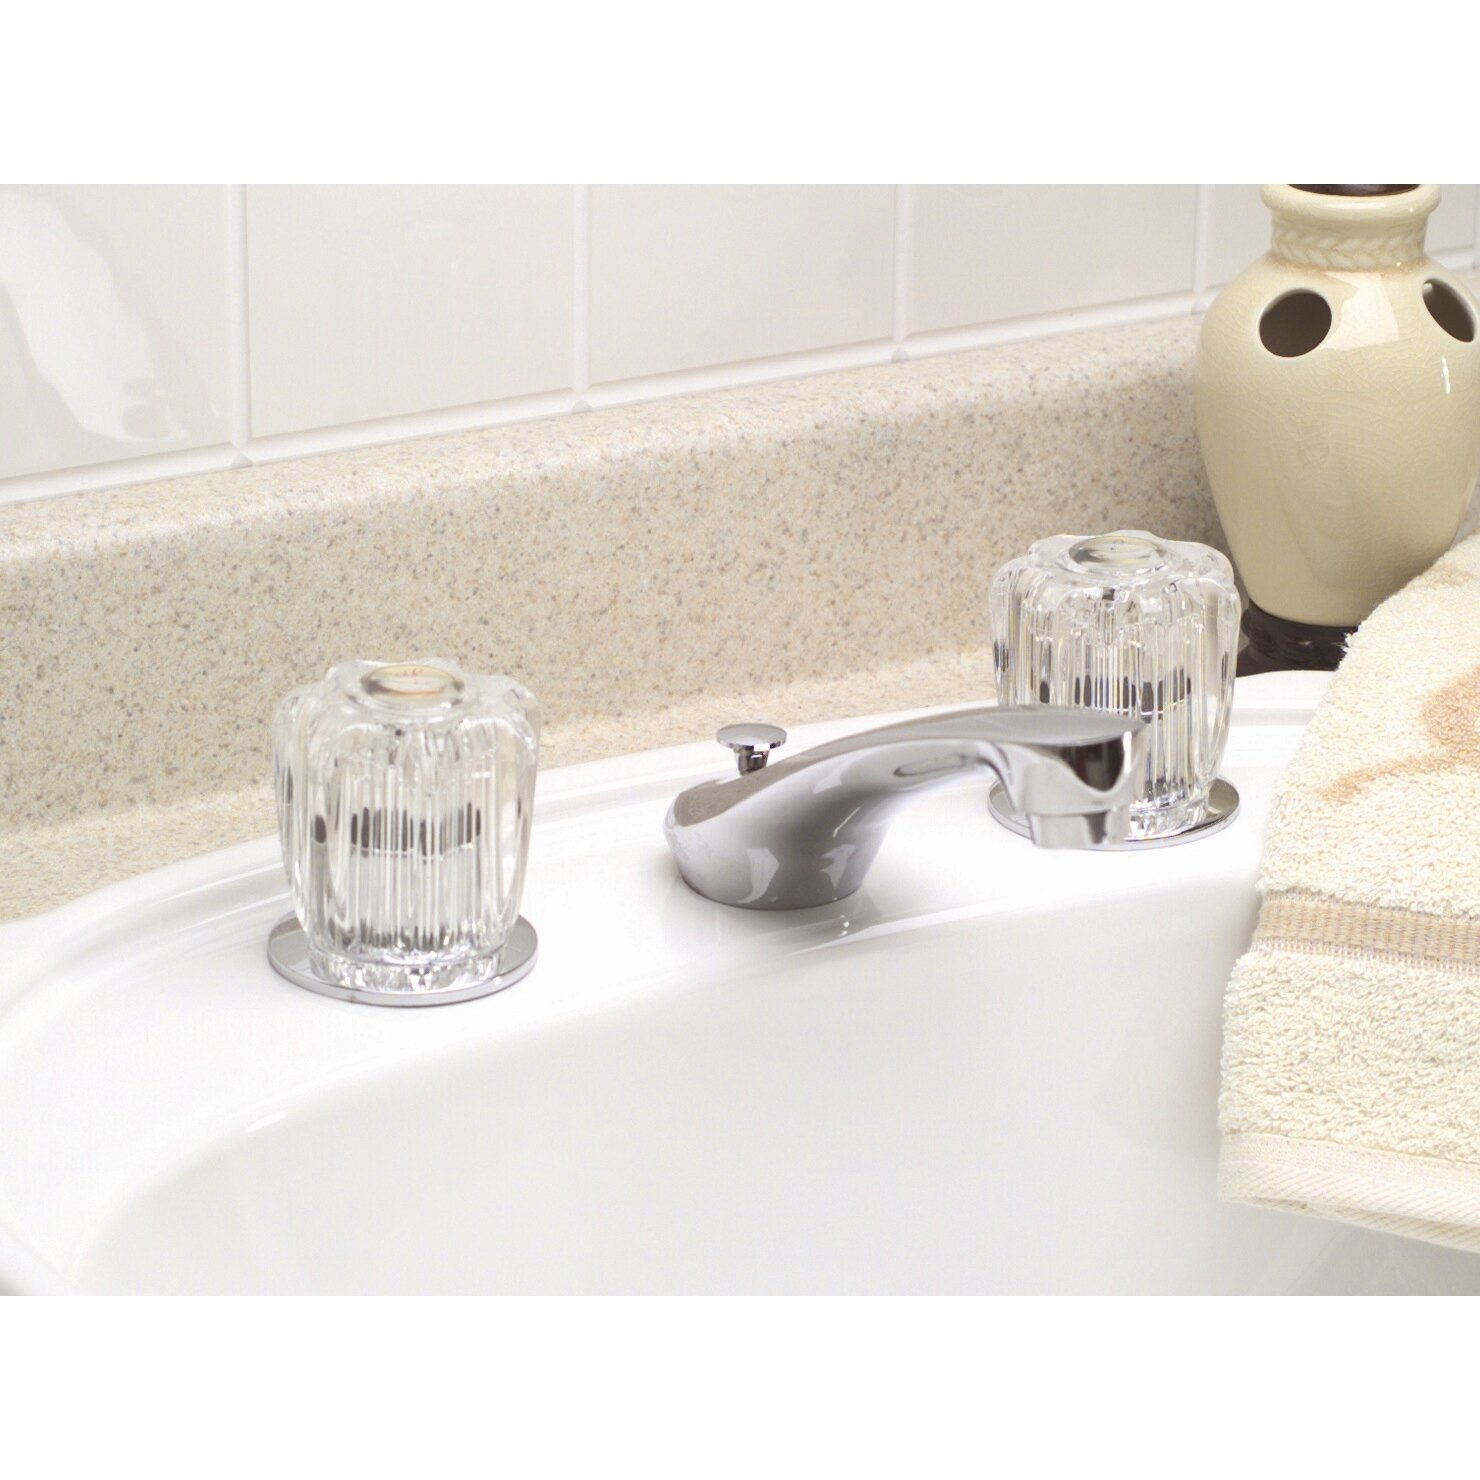 bathroom faucets with porcelain handles | My Web Value